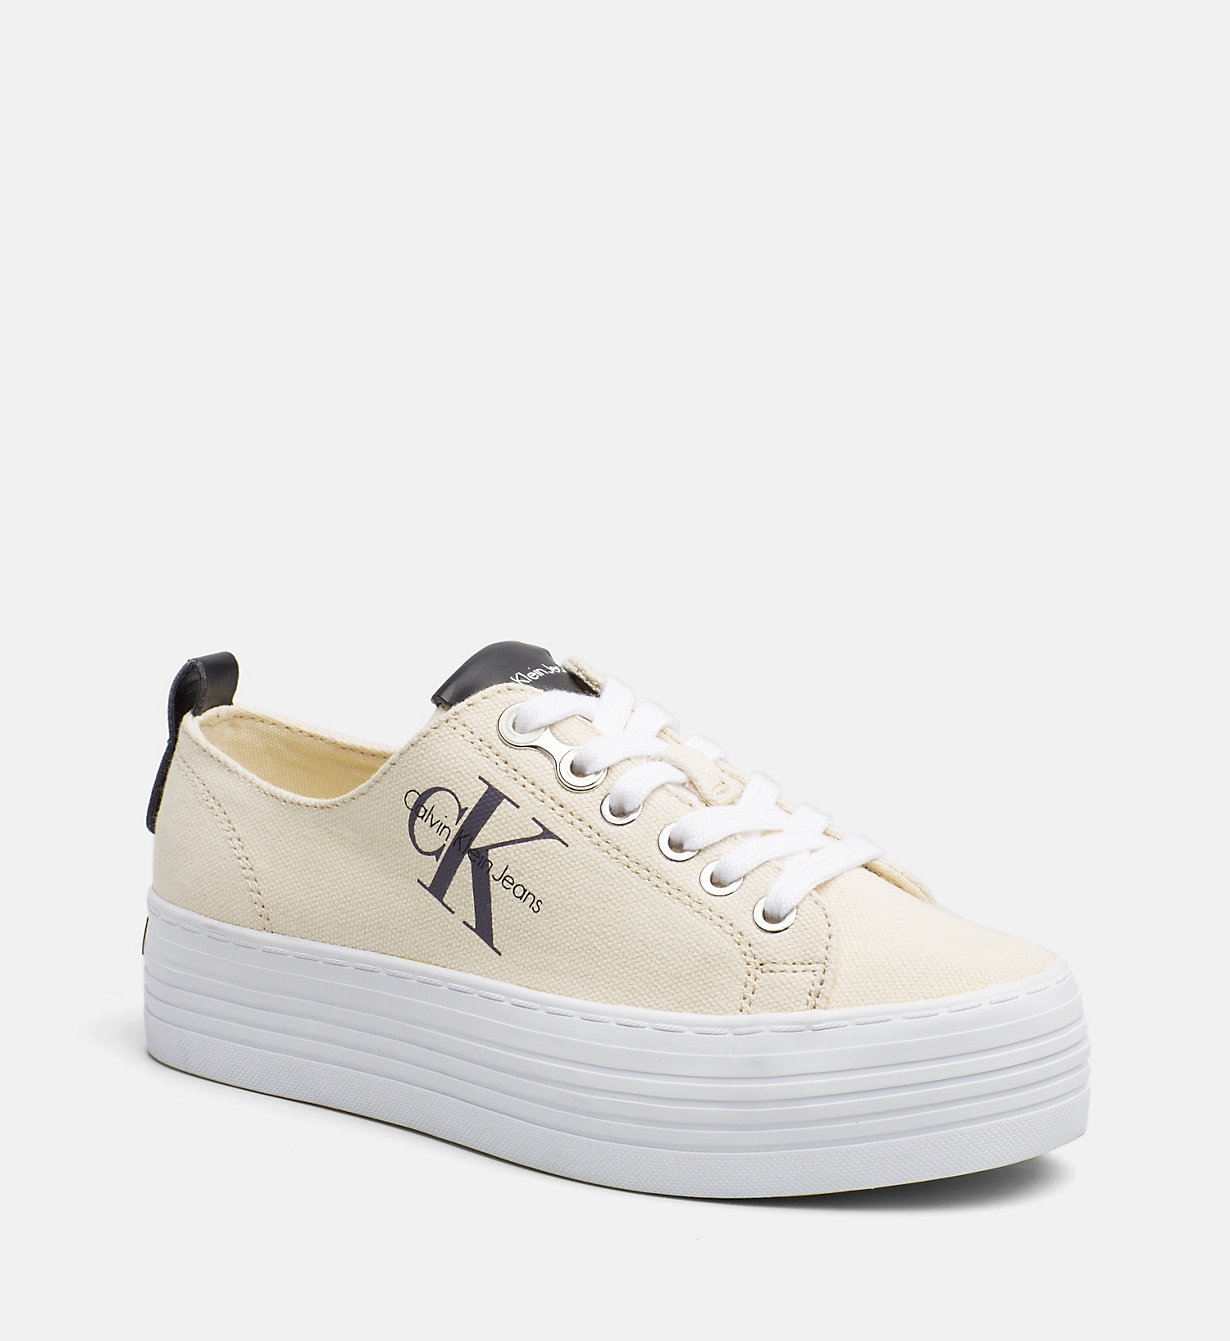 Calvin Klein Zapatillas De Lona Natural/white 41,40,39